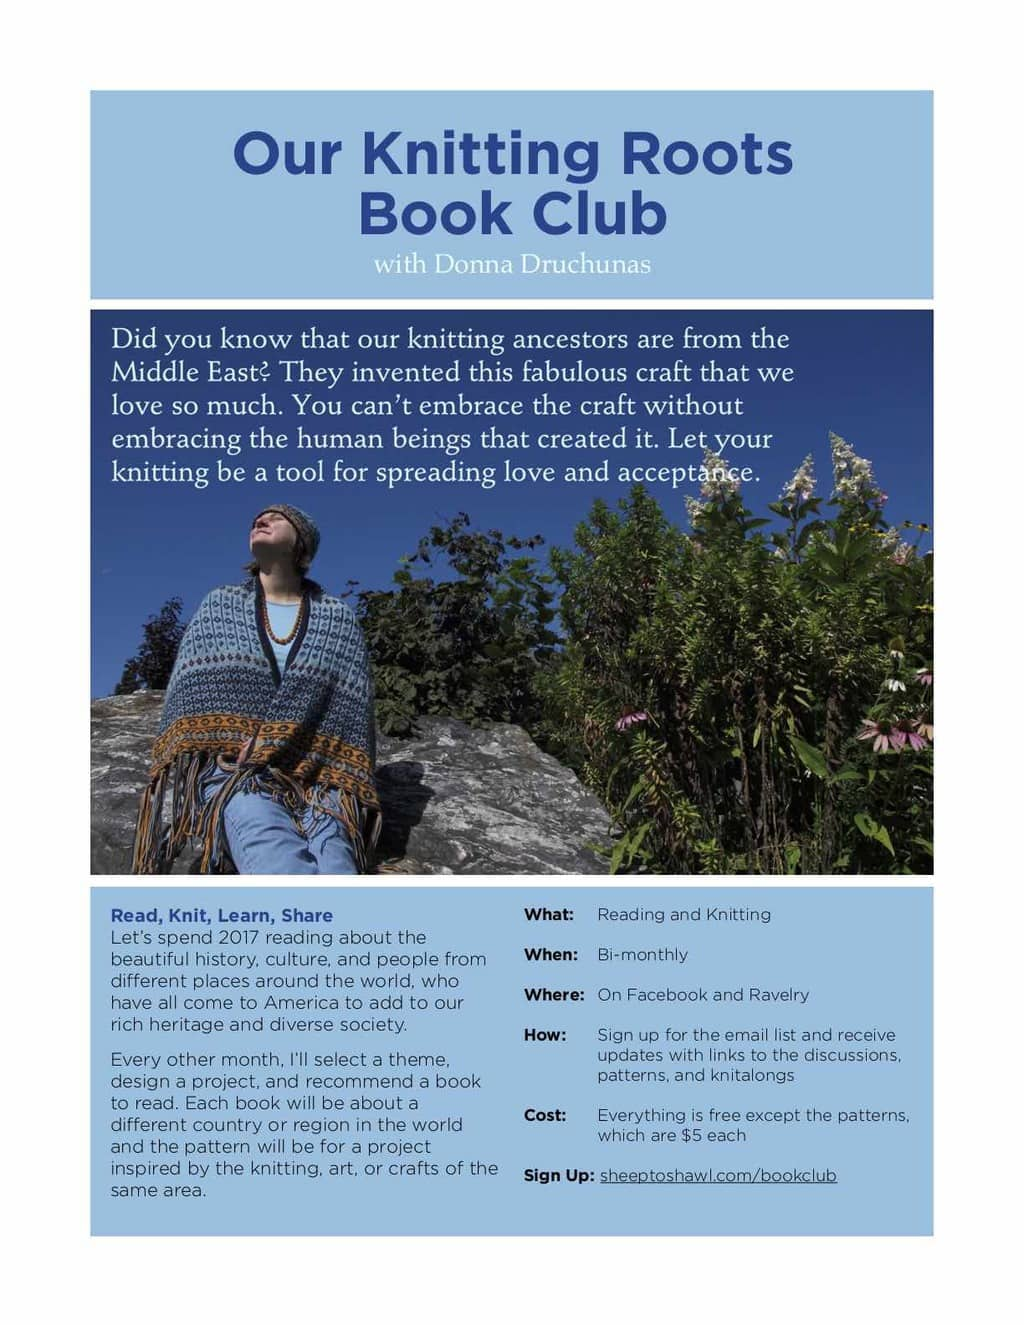 Knitting Club Book : Our knitting roots book club with donna druchunas sheep